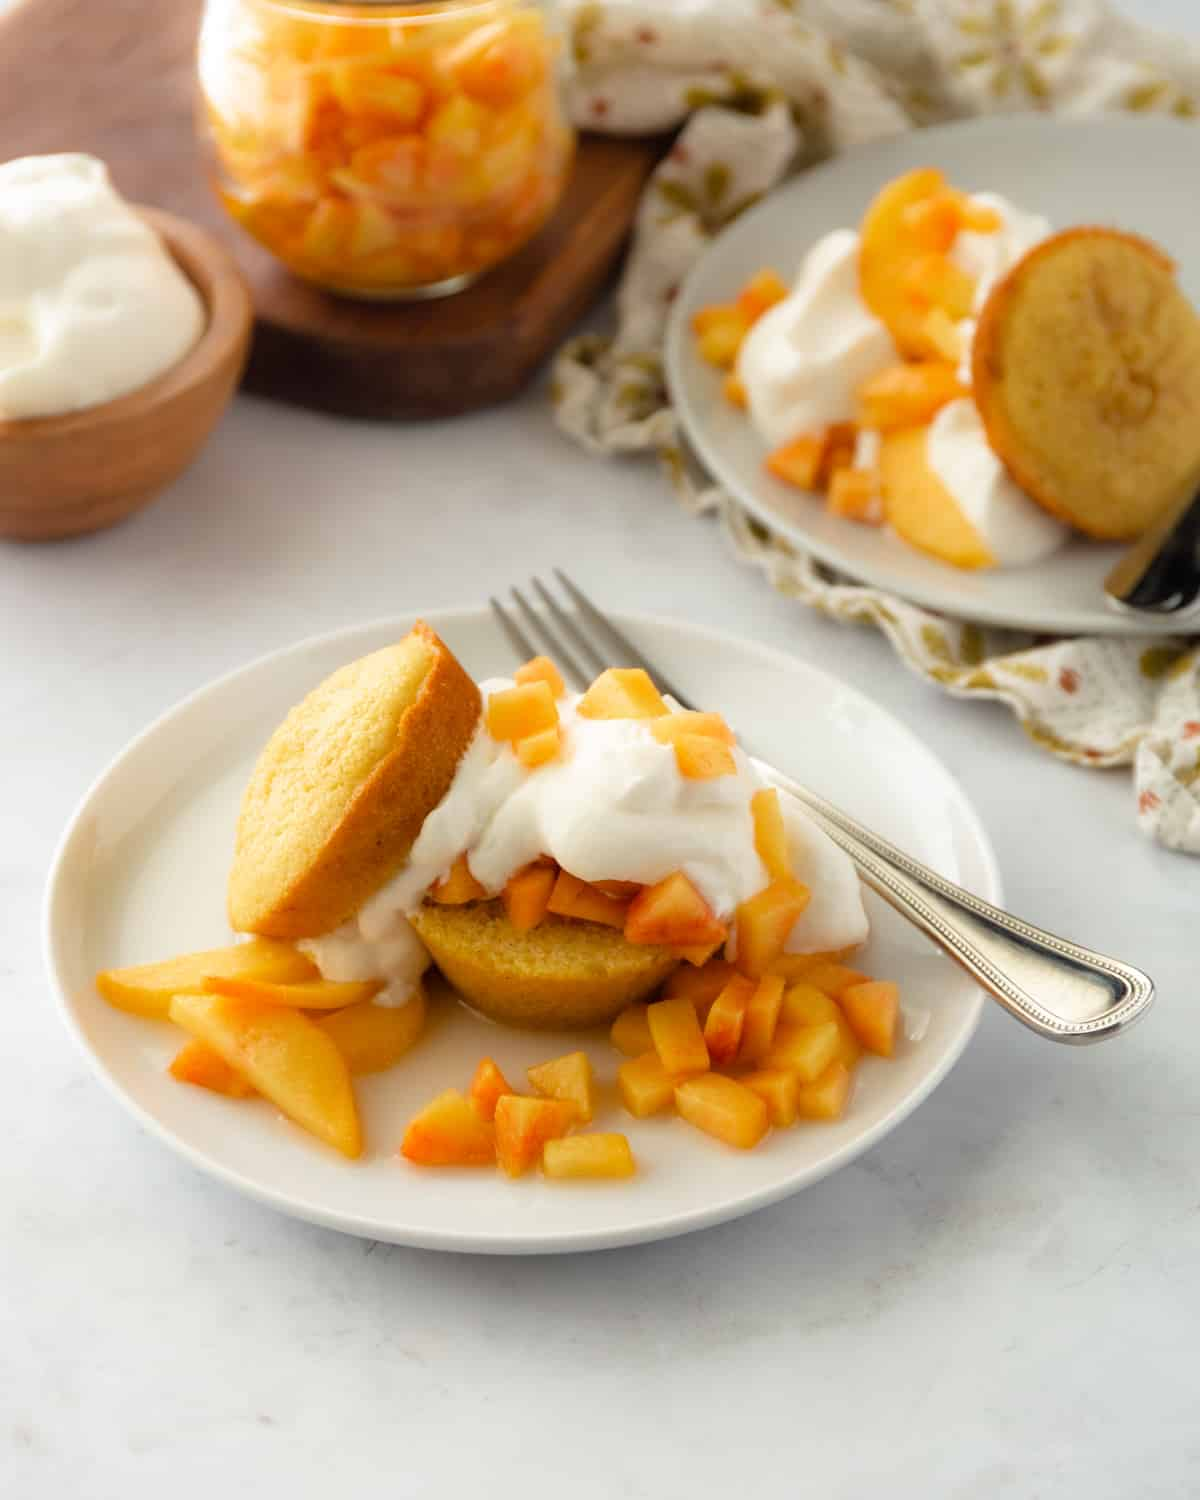 shortcakes and peaches on a white plate